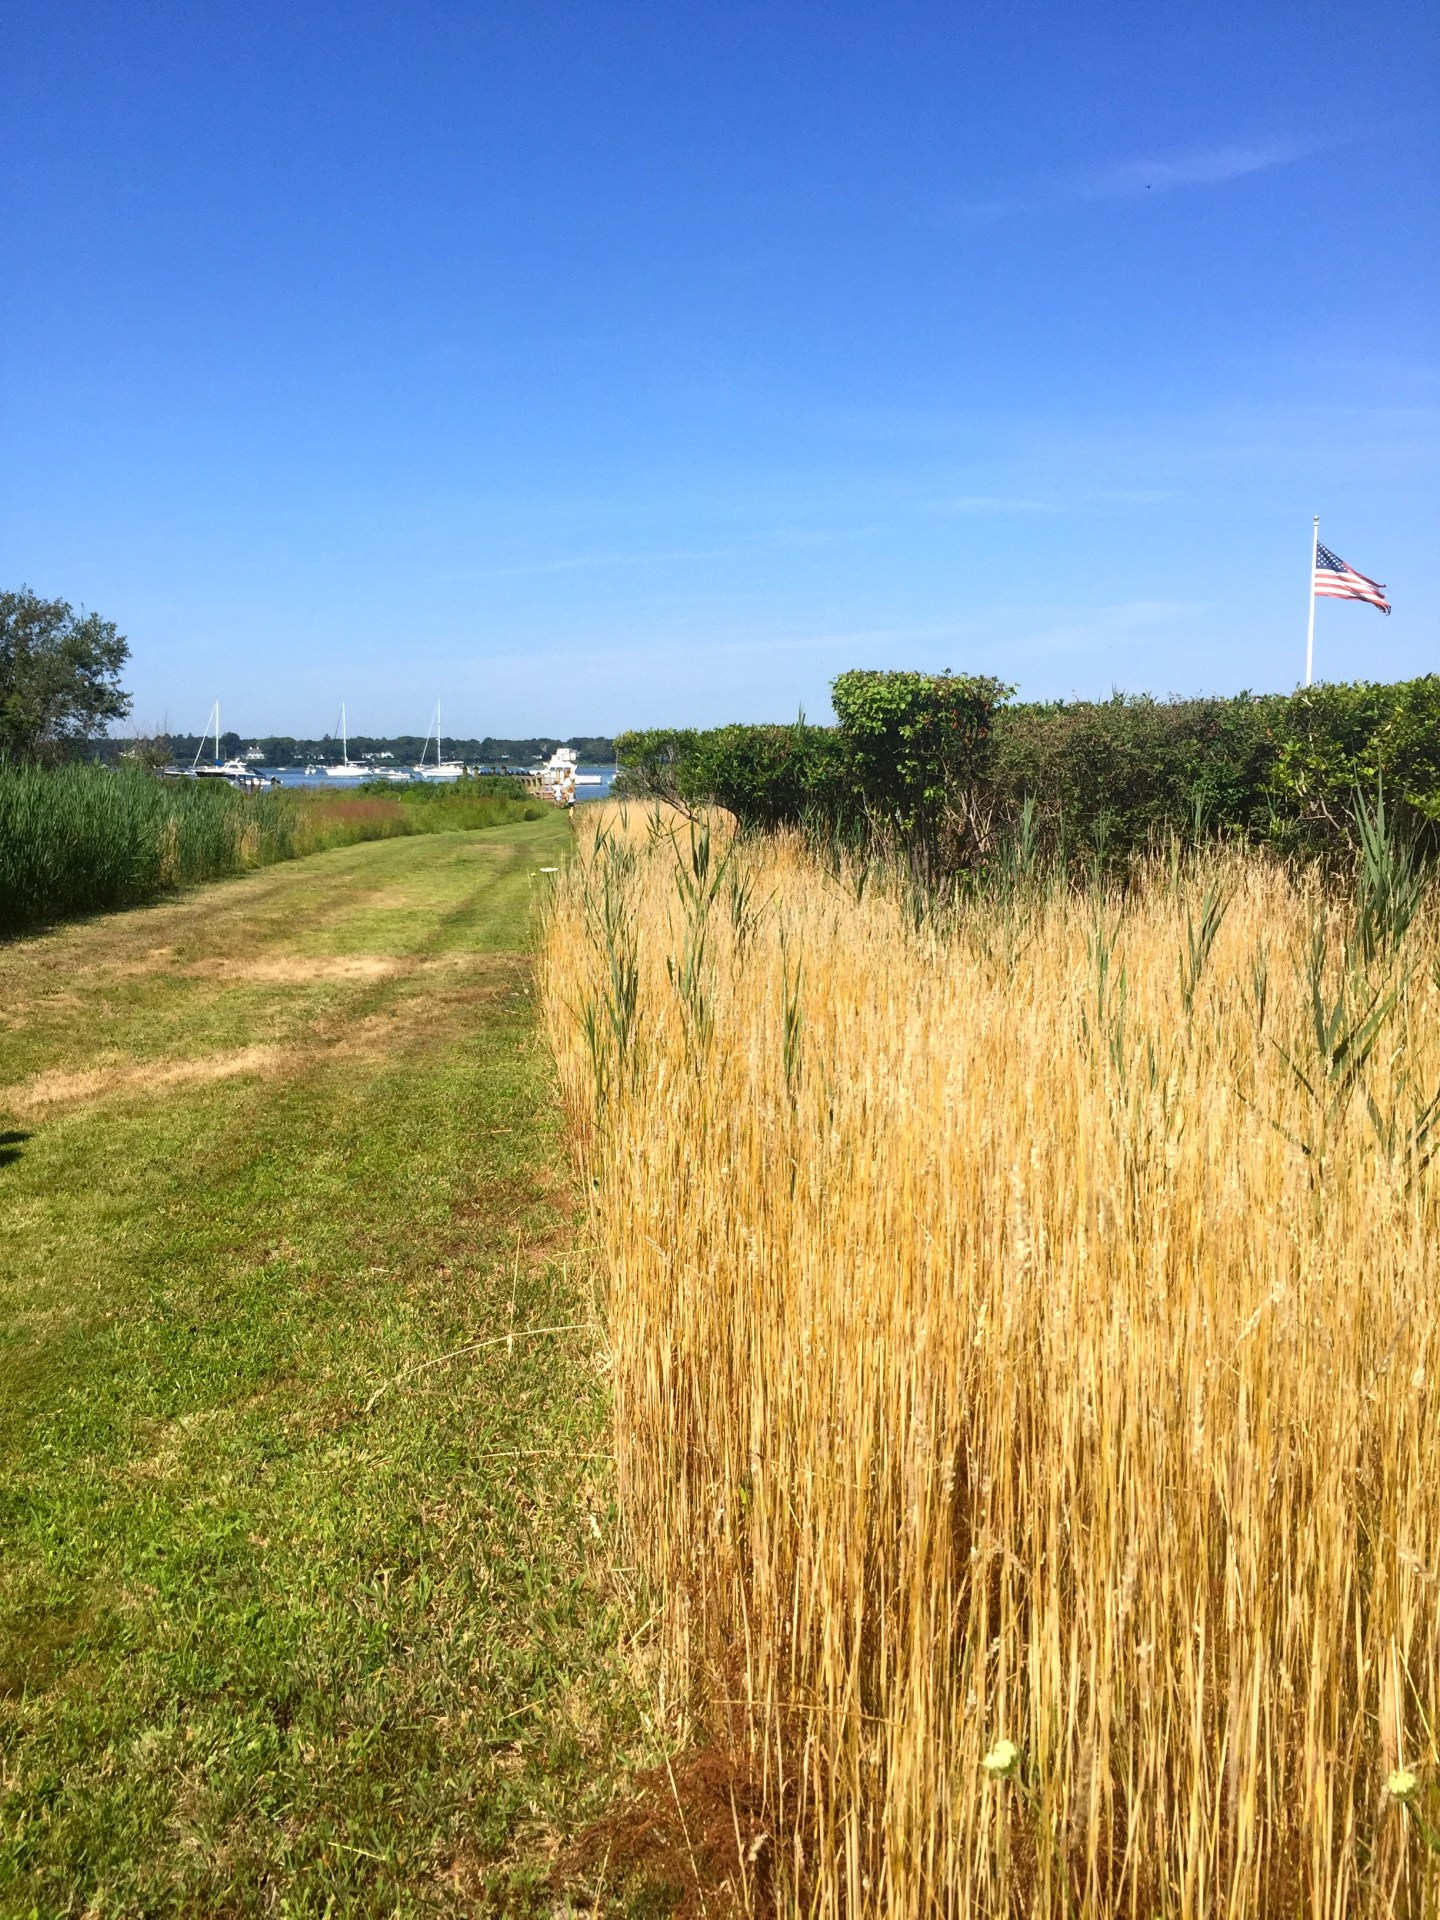 Walking to the Eel River in Osterville, MA.